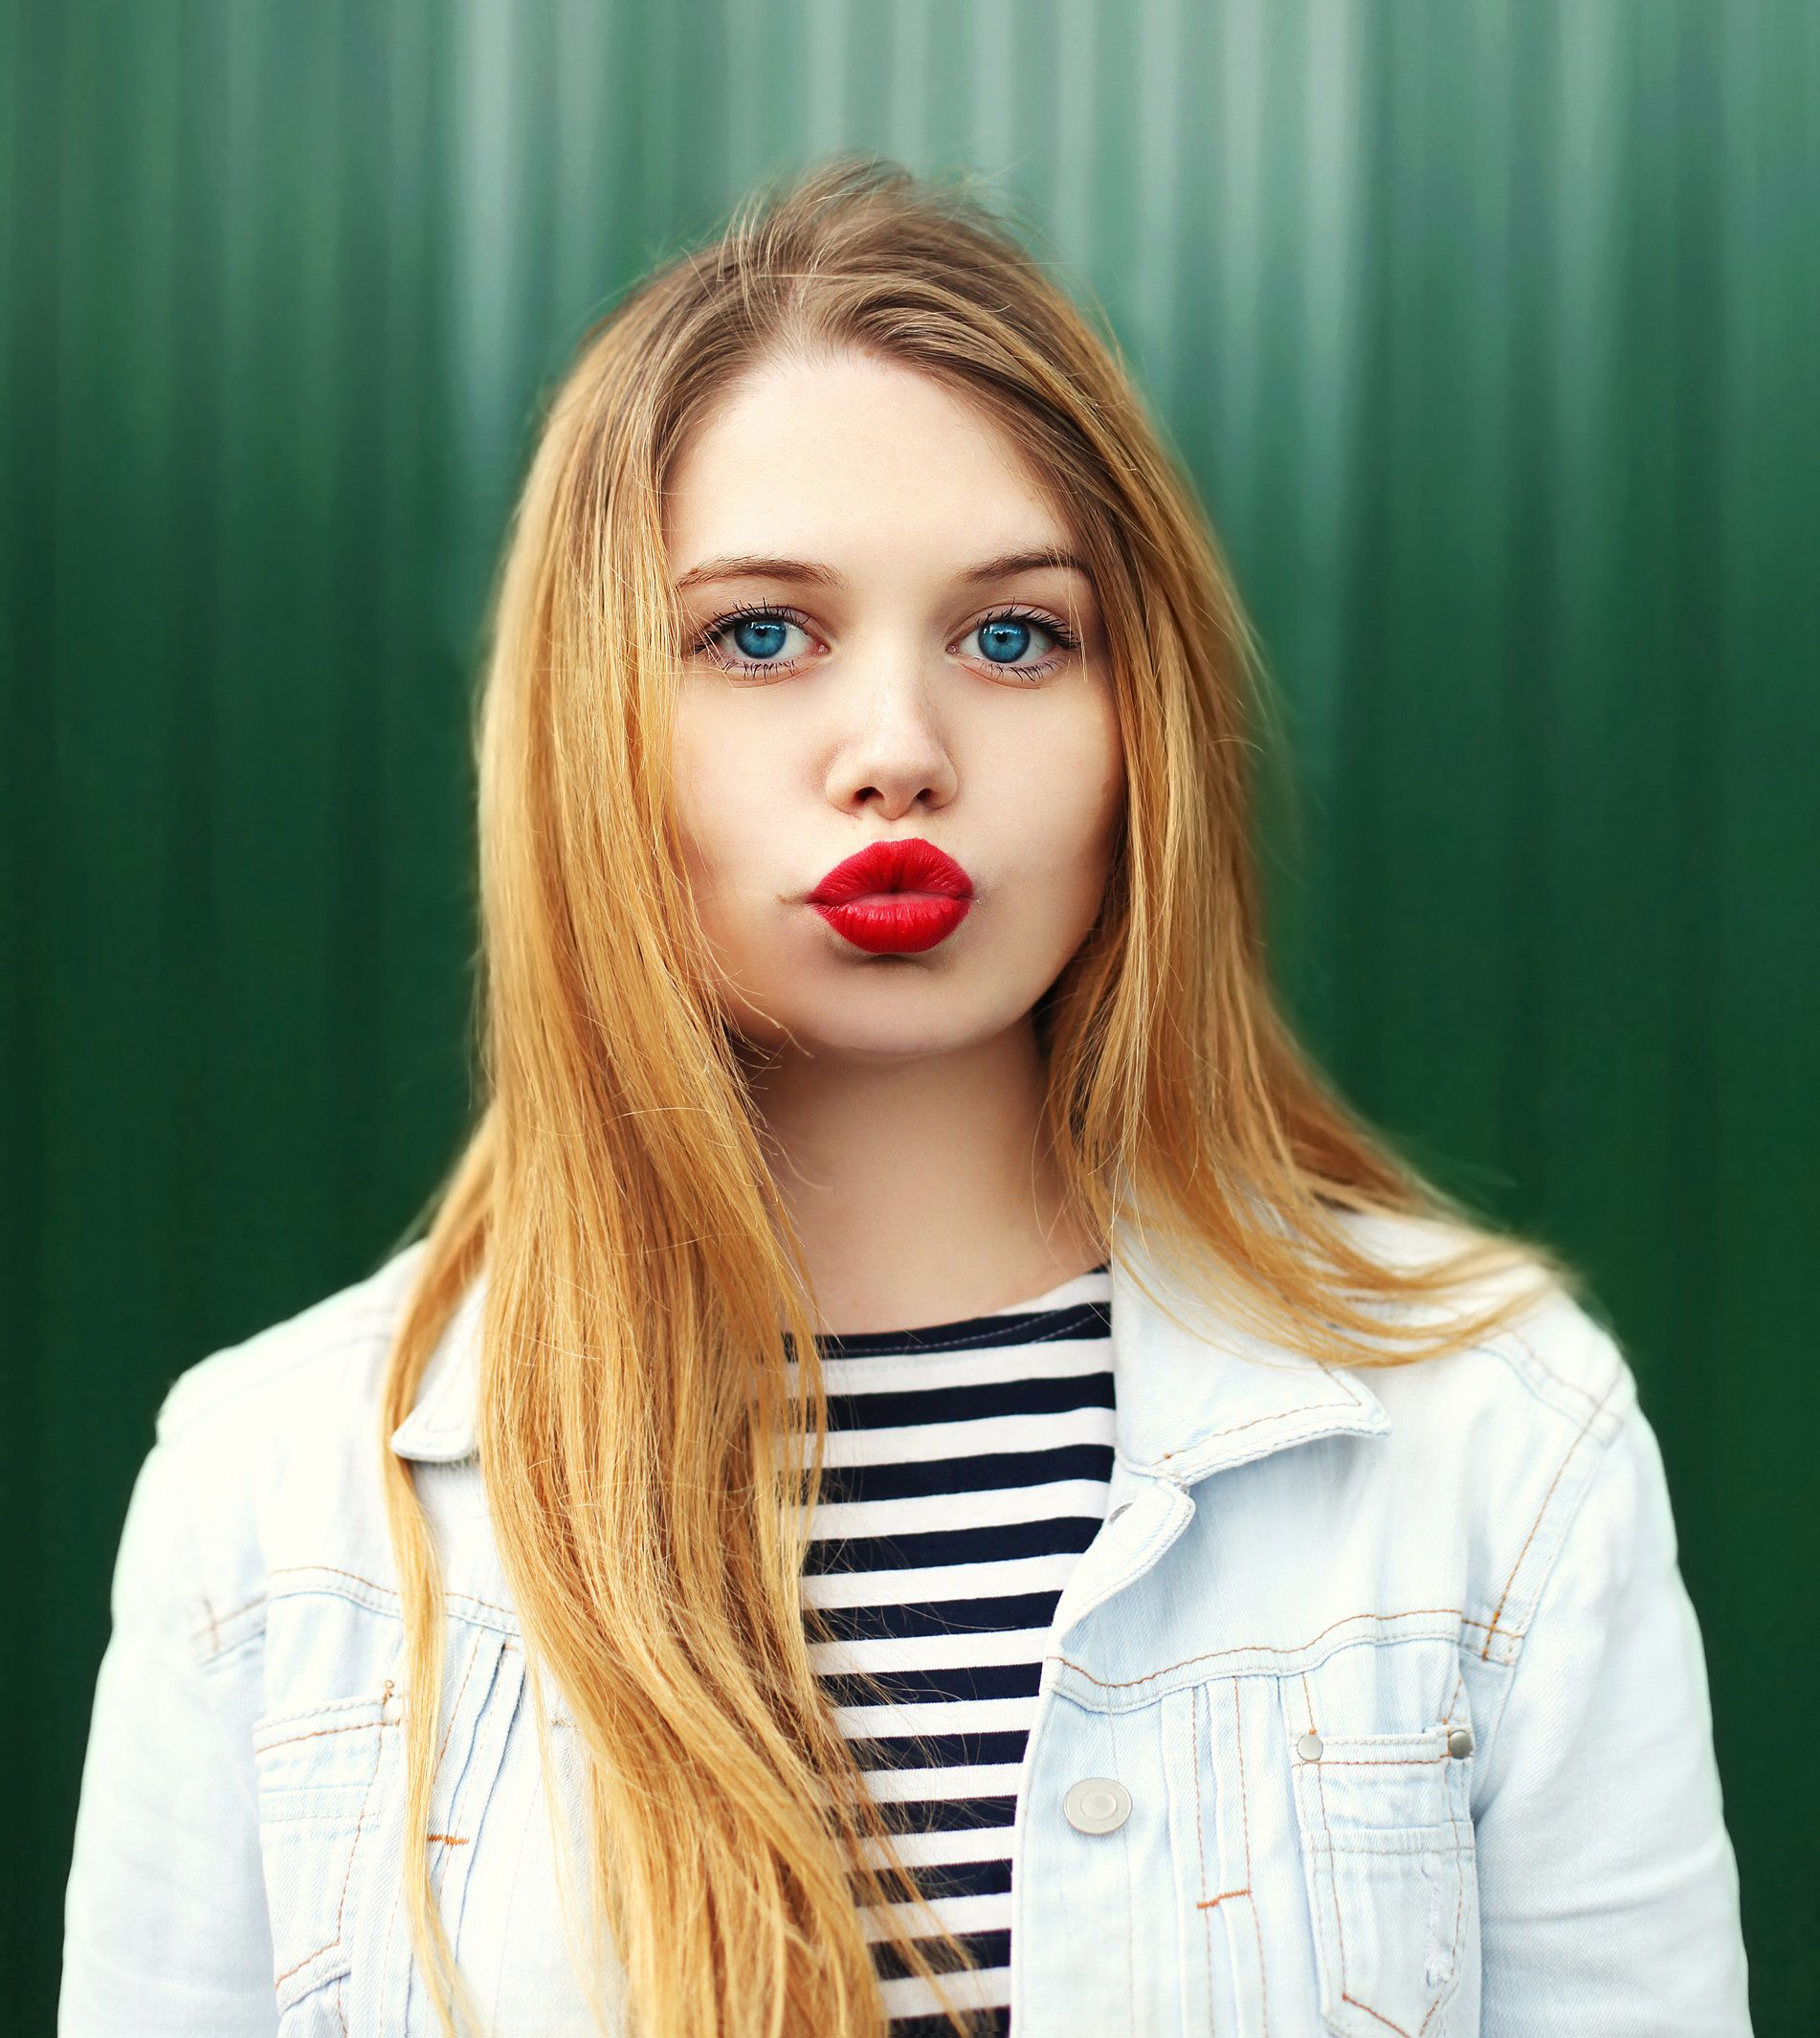 Dating a younger woman pros and cons in Sydney